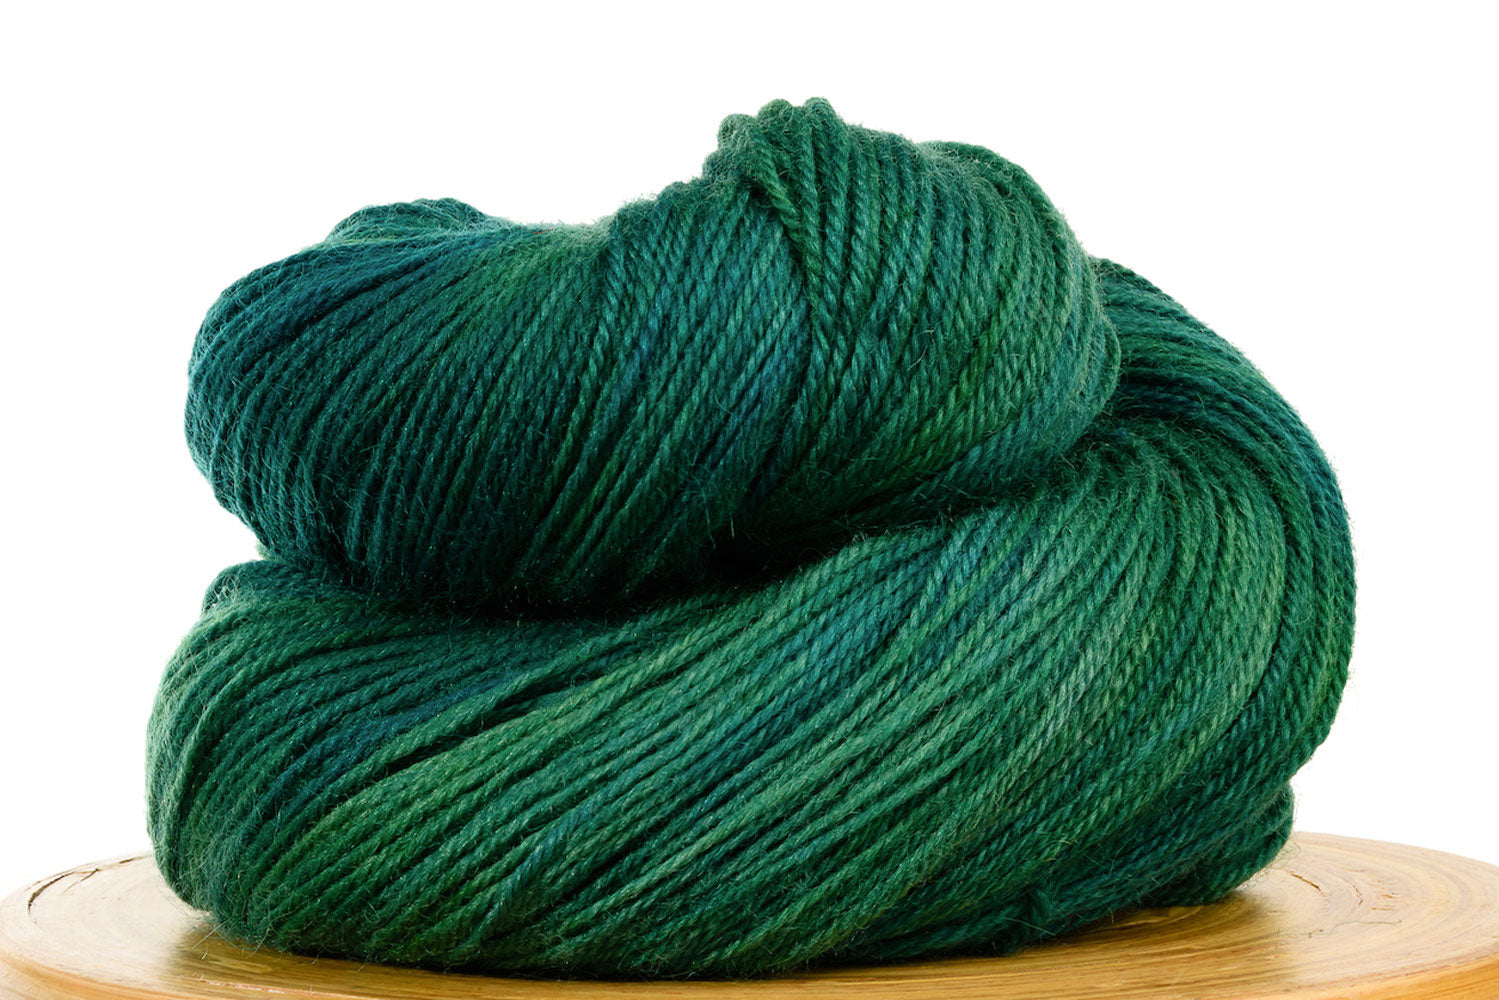 Pizzicato hand-dyed BFL sock yarn in Peacock